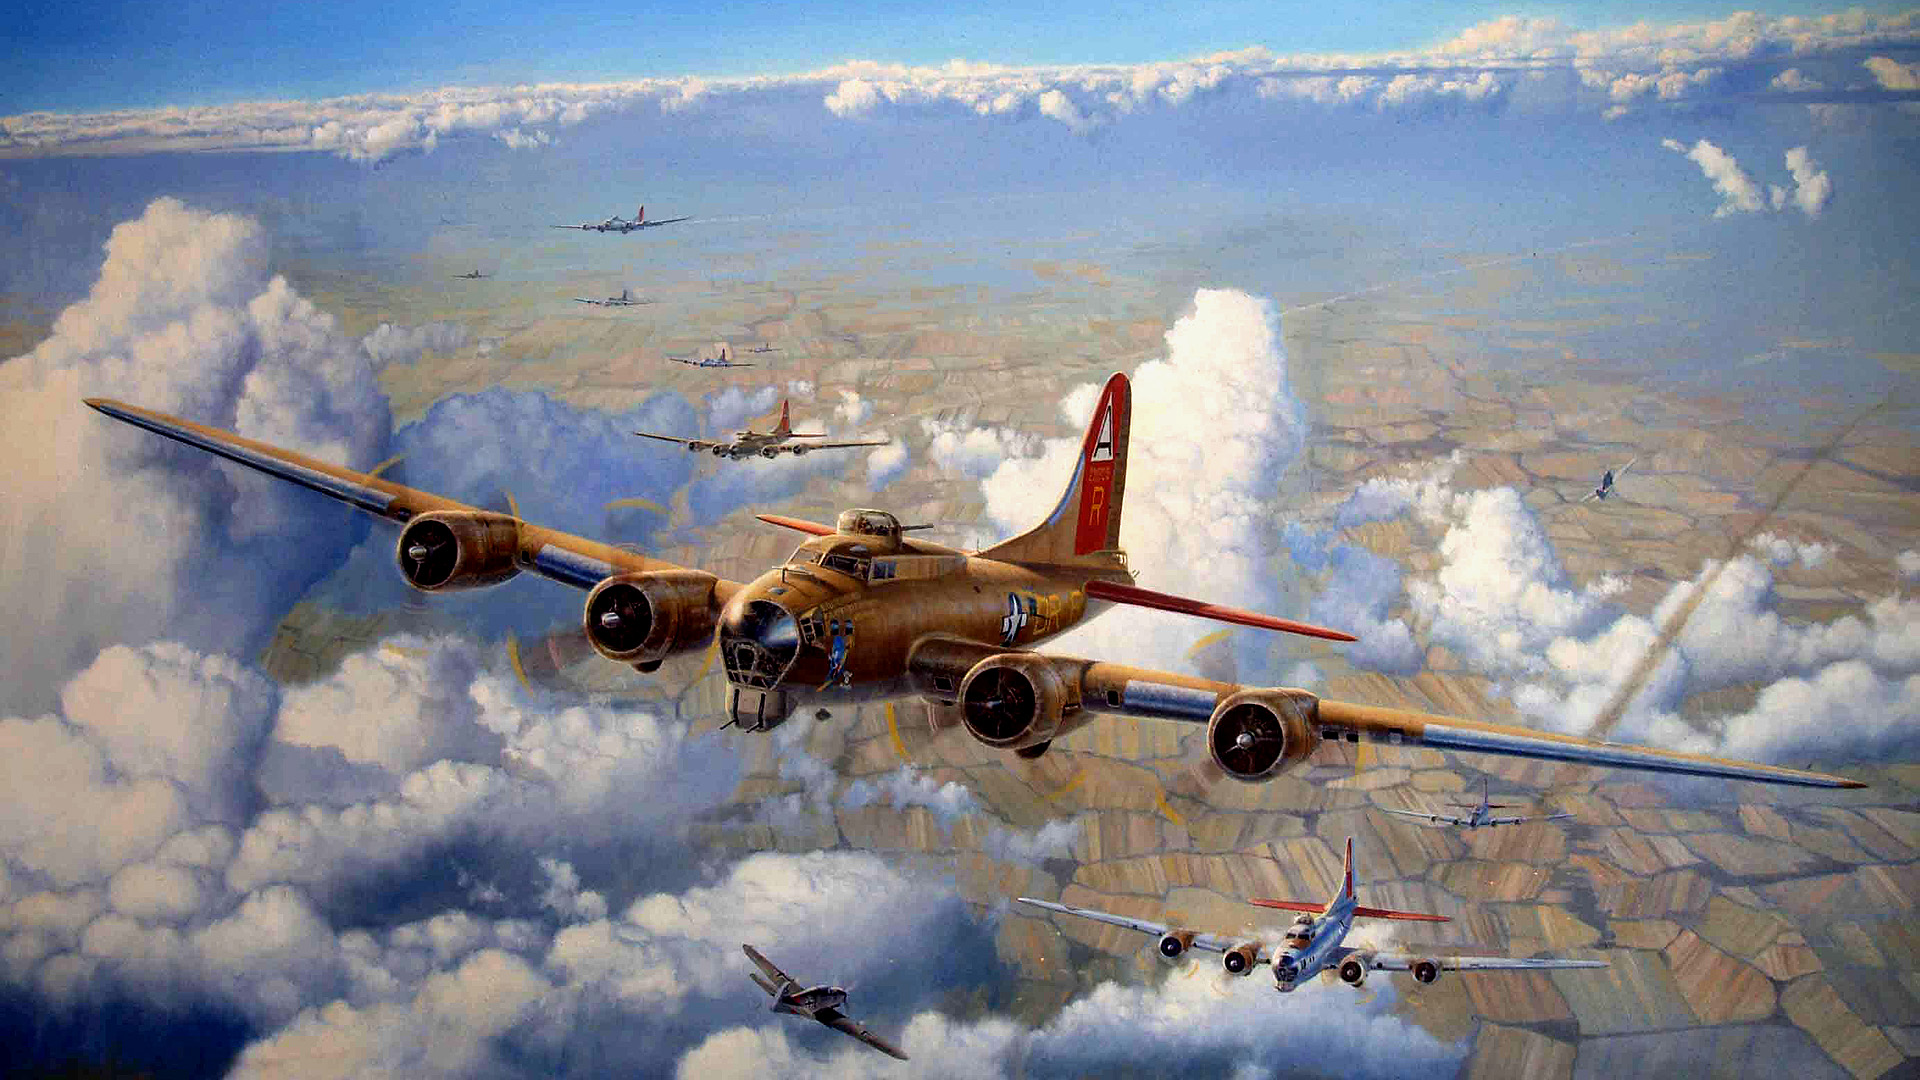 Boeing B 17 Flying Fortress Wallpapers and Background Images 1920x1080